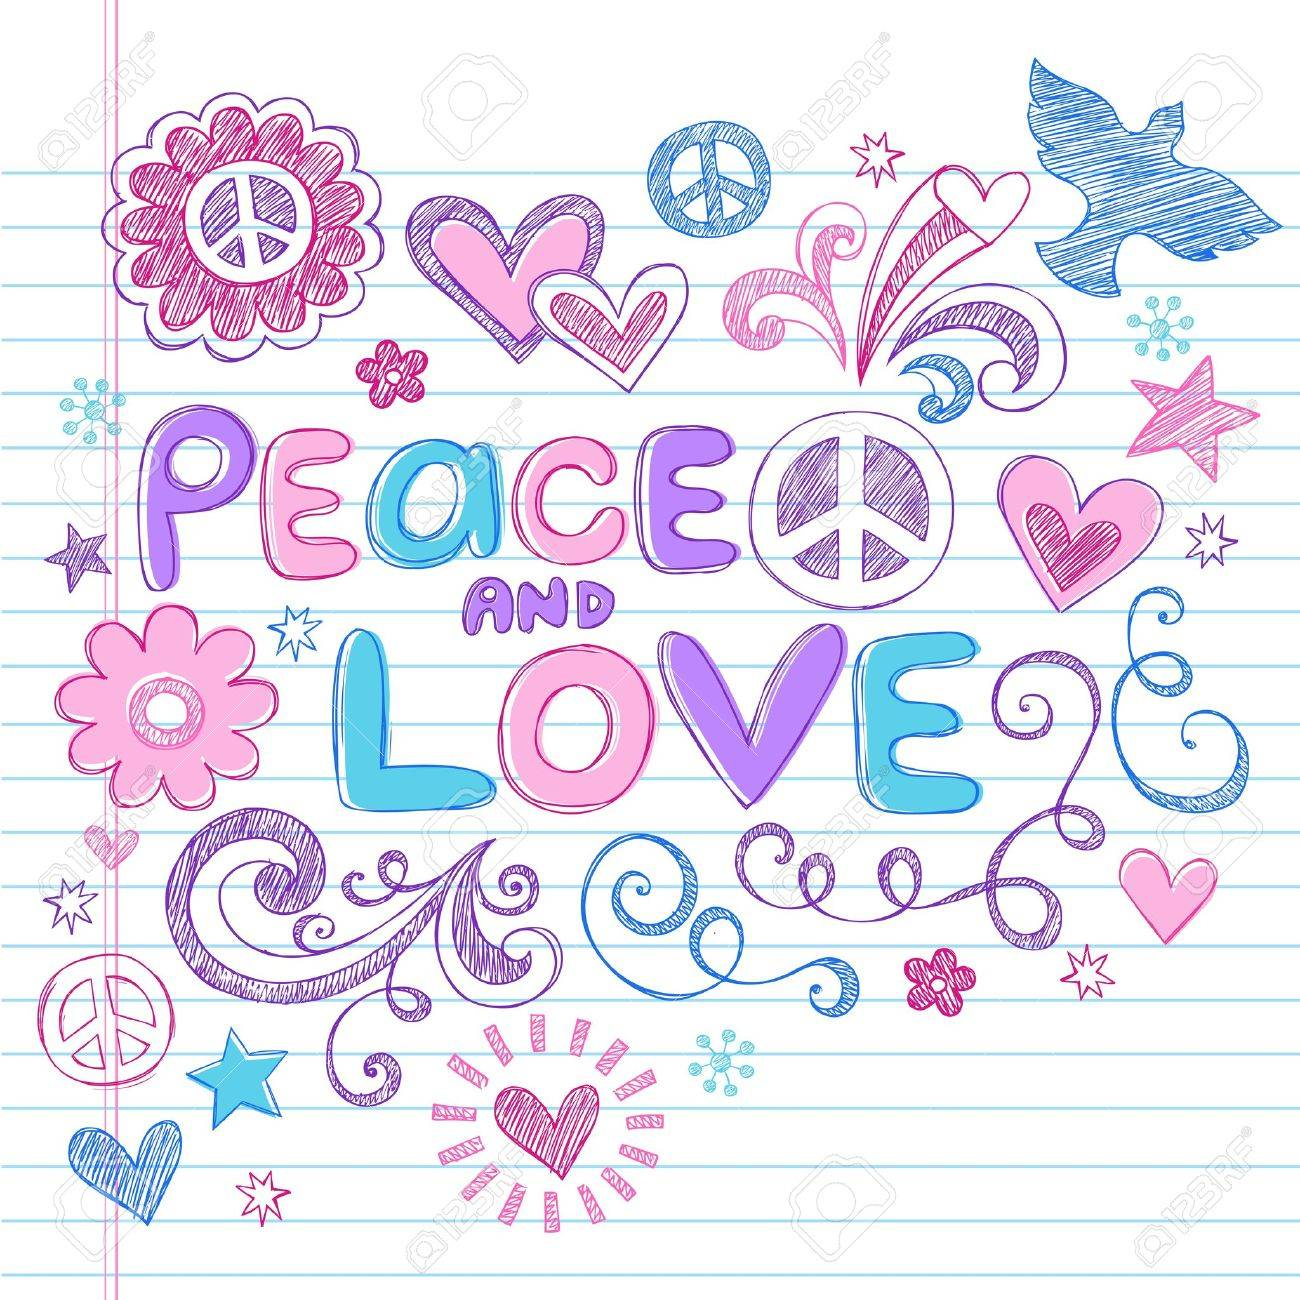 Peace   Love Sketchy Notebook Doodles Design Elements on Lined Sketchbook Paper Background- Vector Illustration Stock Vector - 14481548